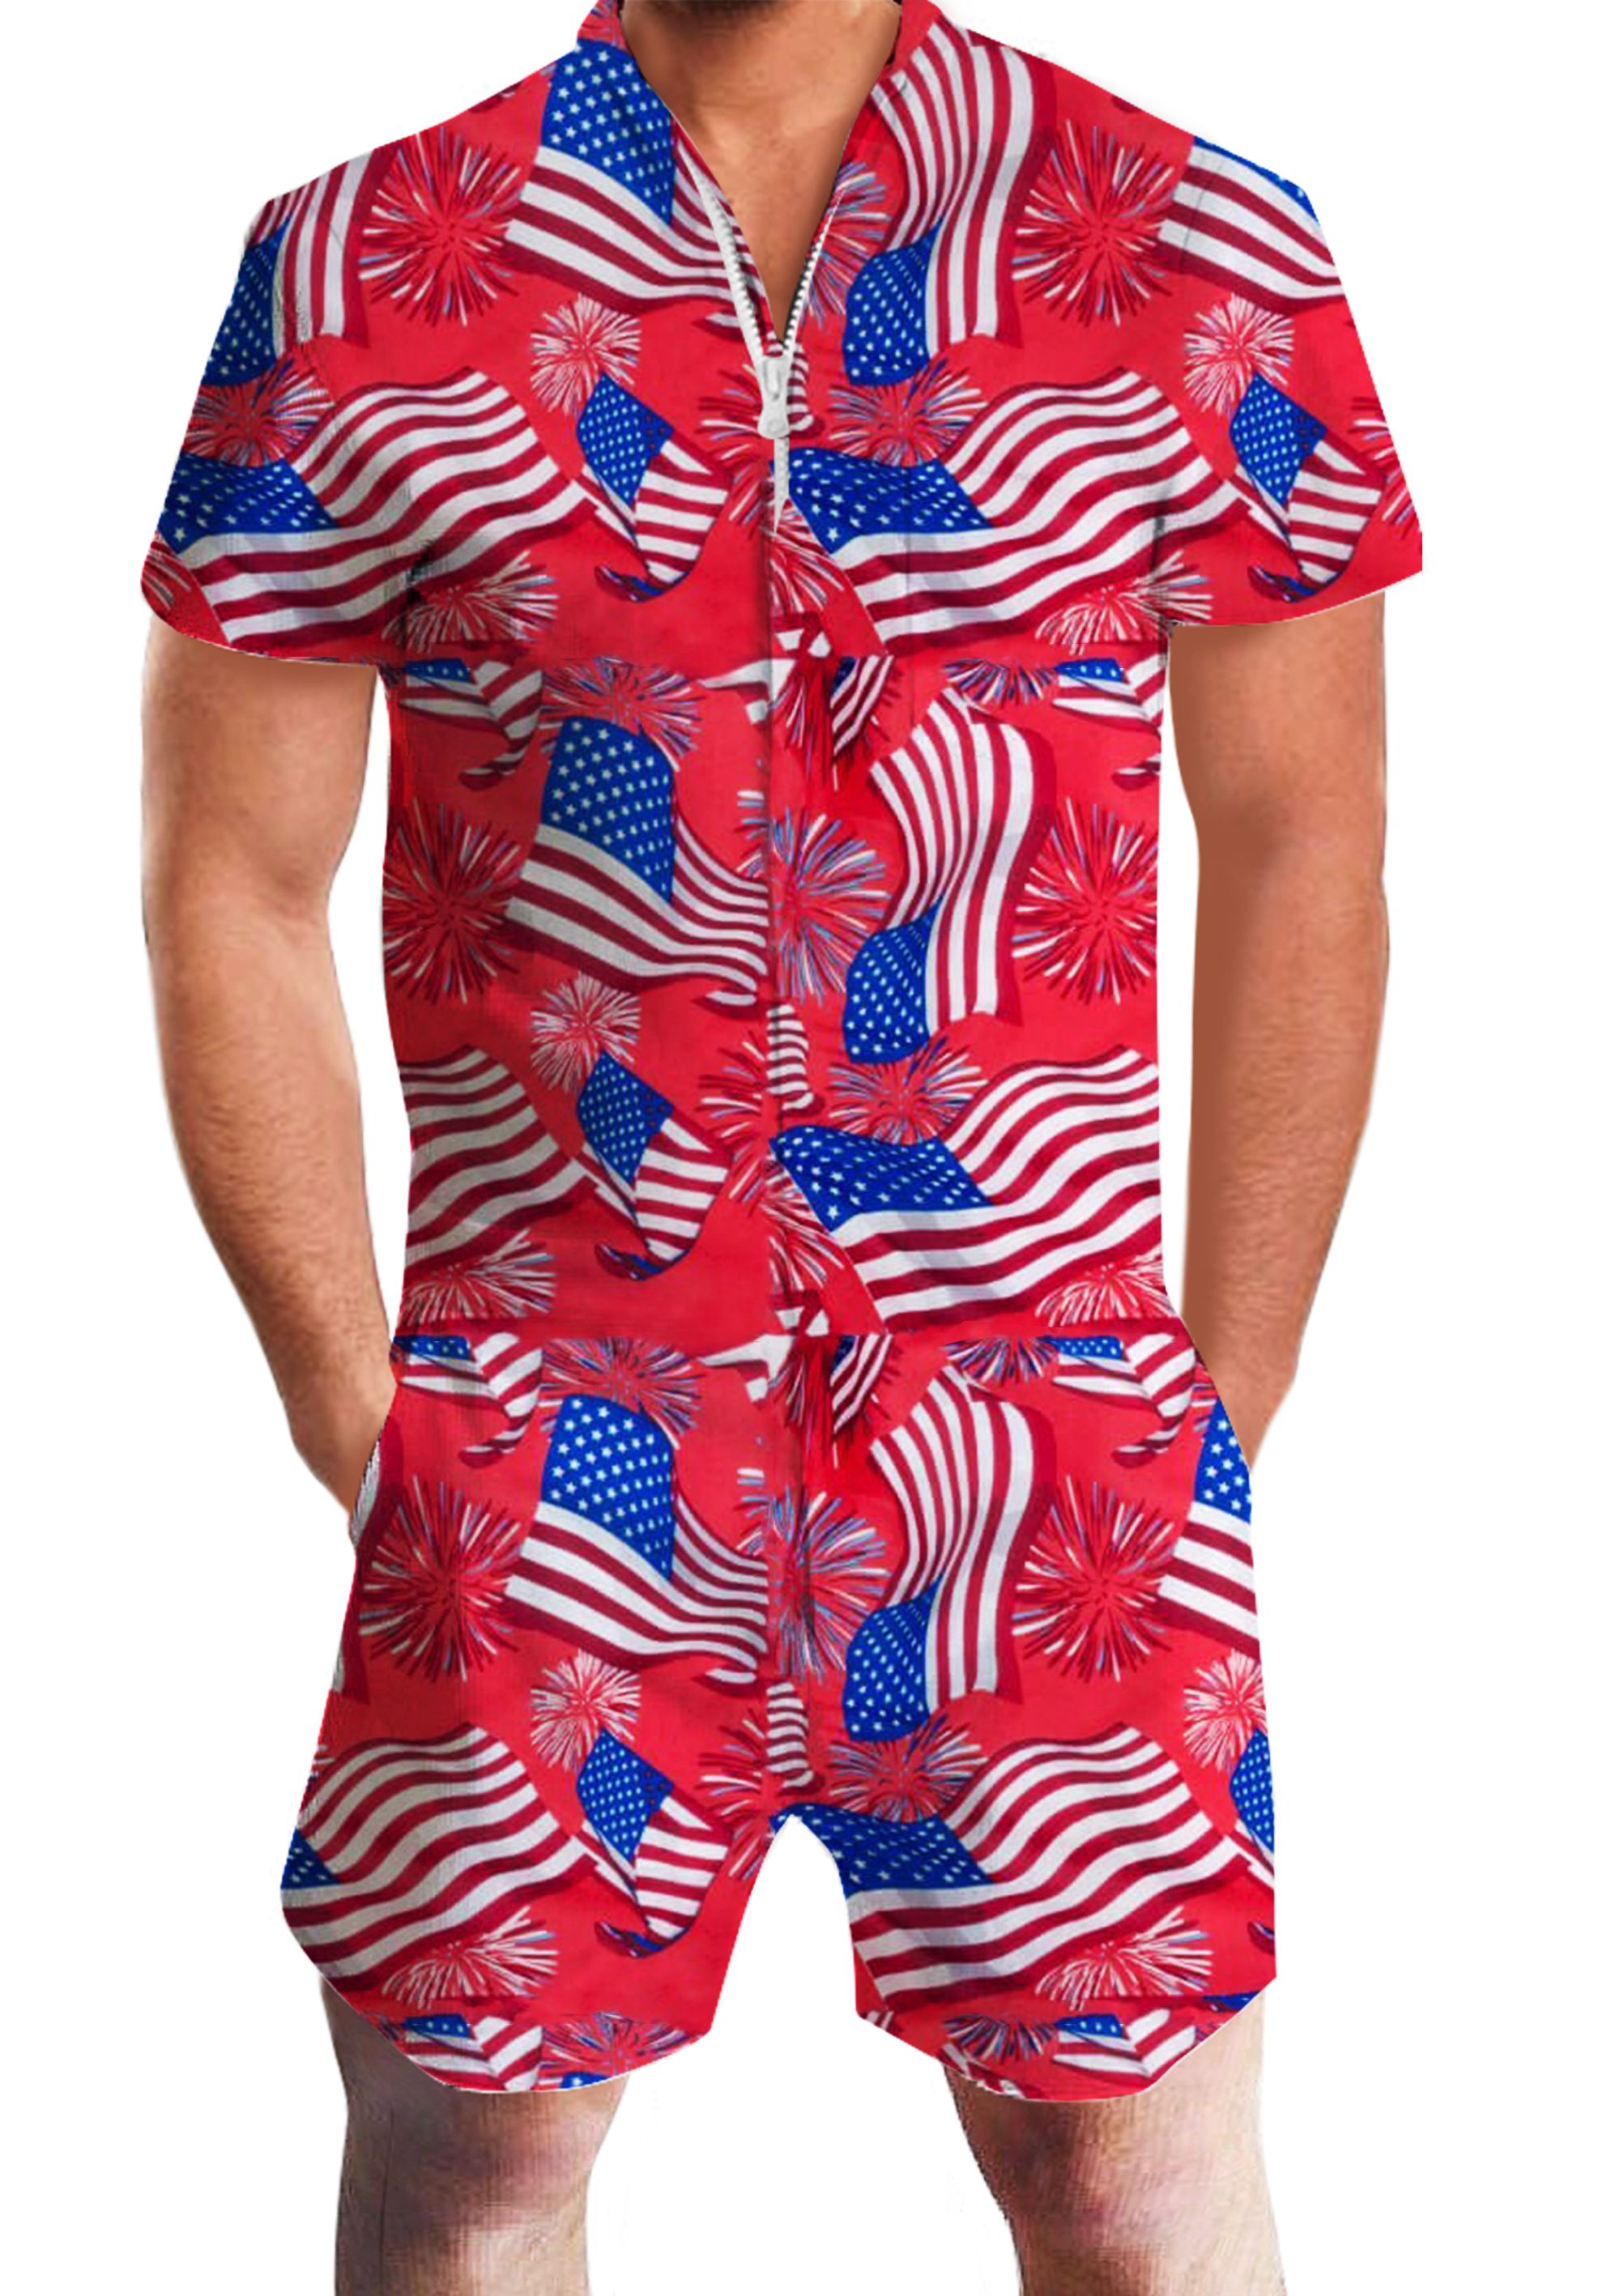 8207438fac5 Funny Male Rompers